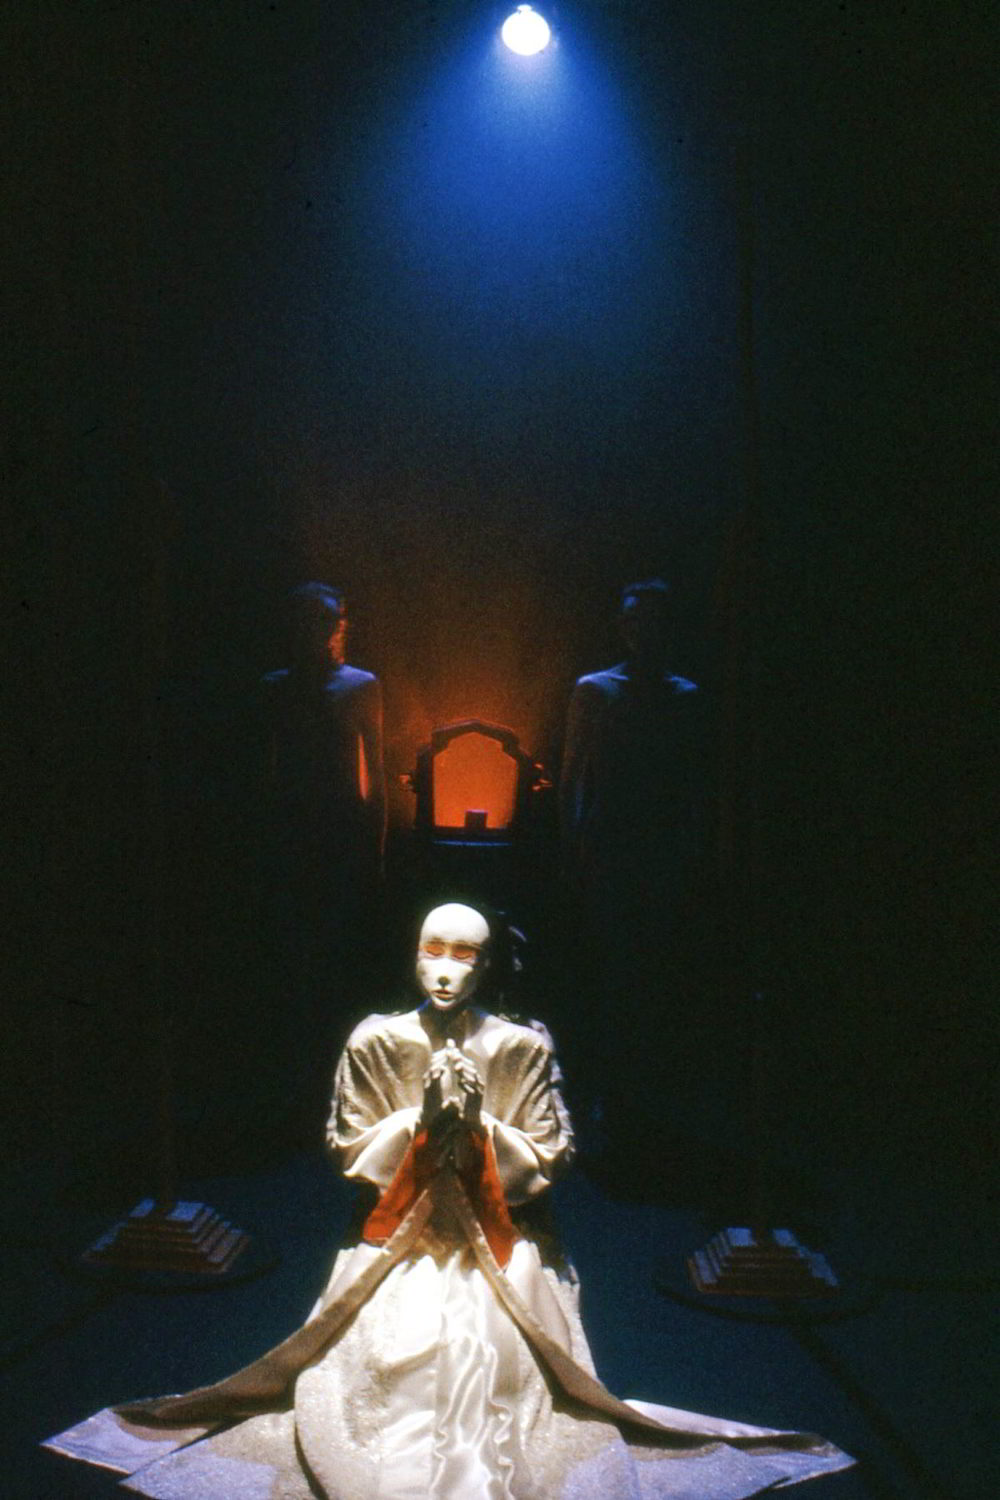 white robed figure holding a white face mask kneeling  under a blue spotlight in front of an upstage red-lit alcove